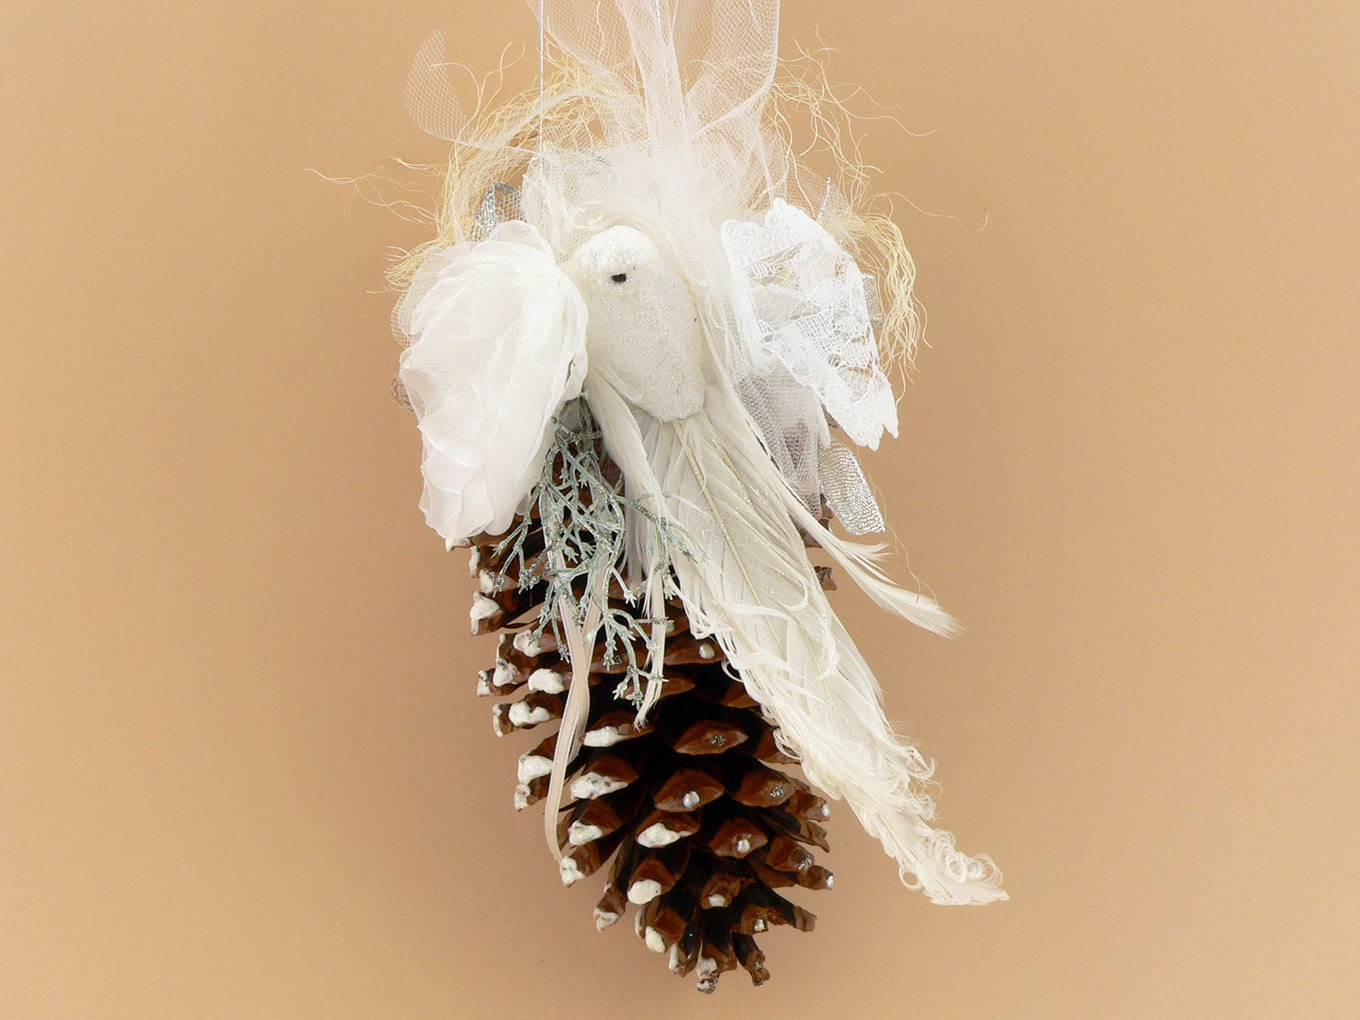 White dove ornament - Giant Pine Cone Christmas Ornament With White Dove Cottage Pine Cone Christmas Ornament Shabby